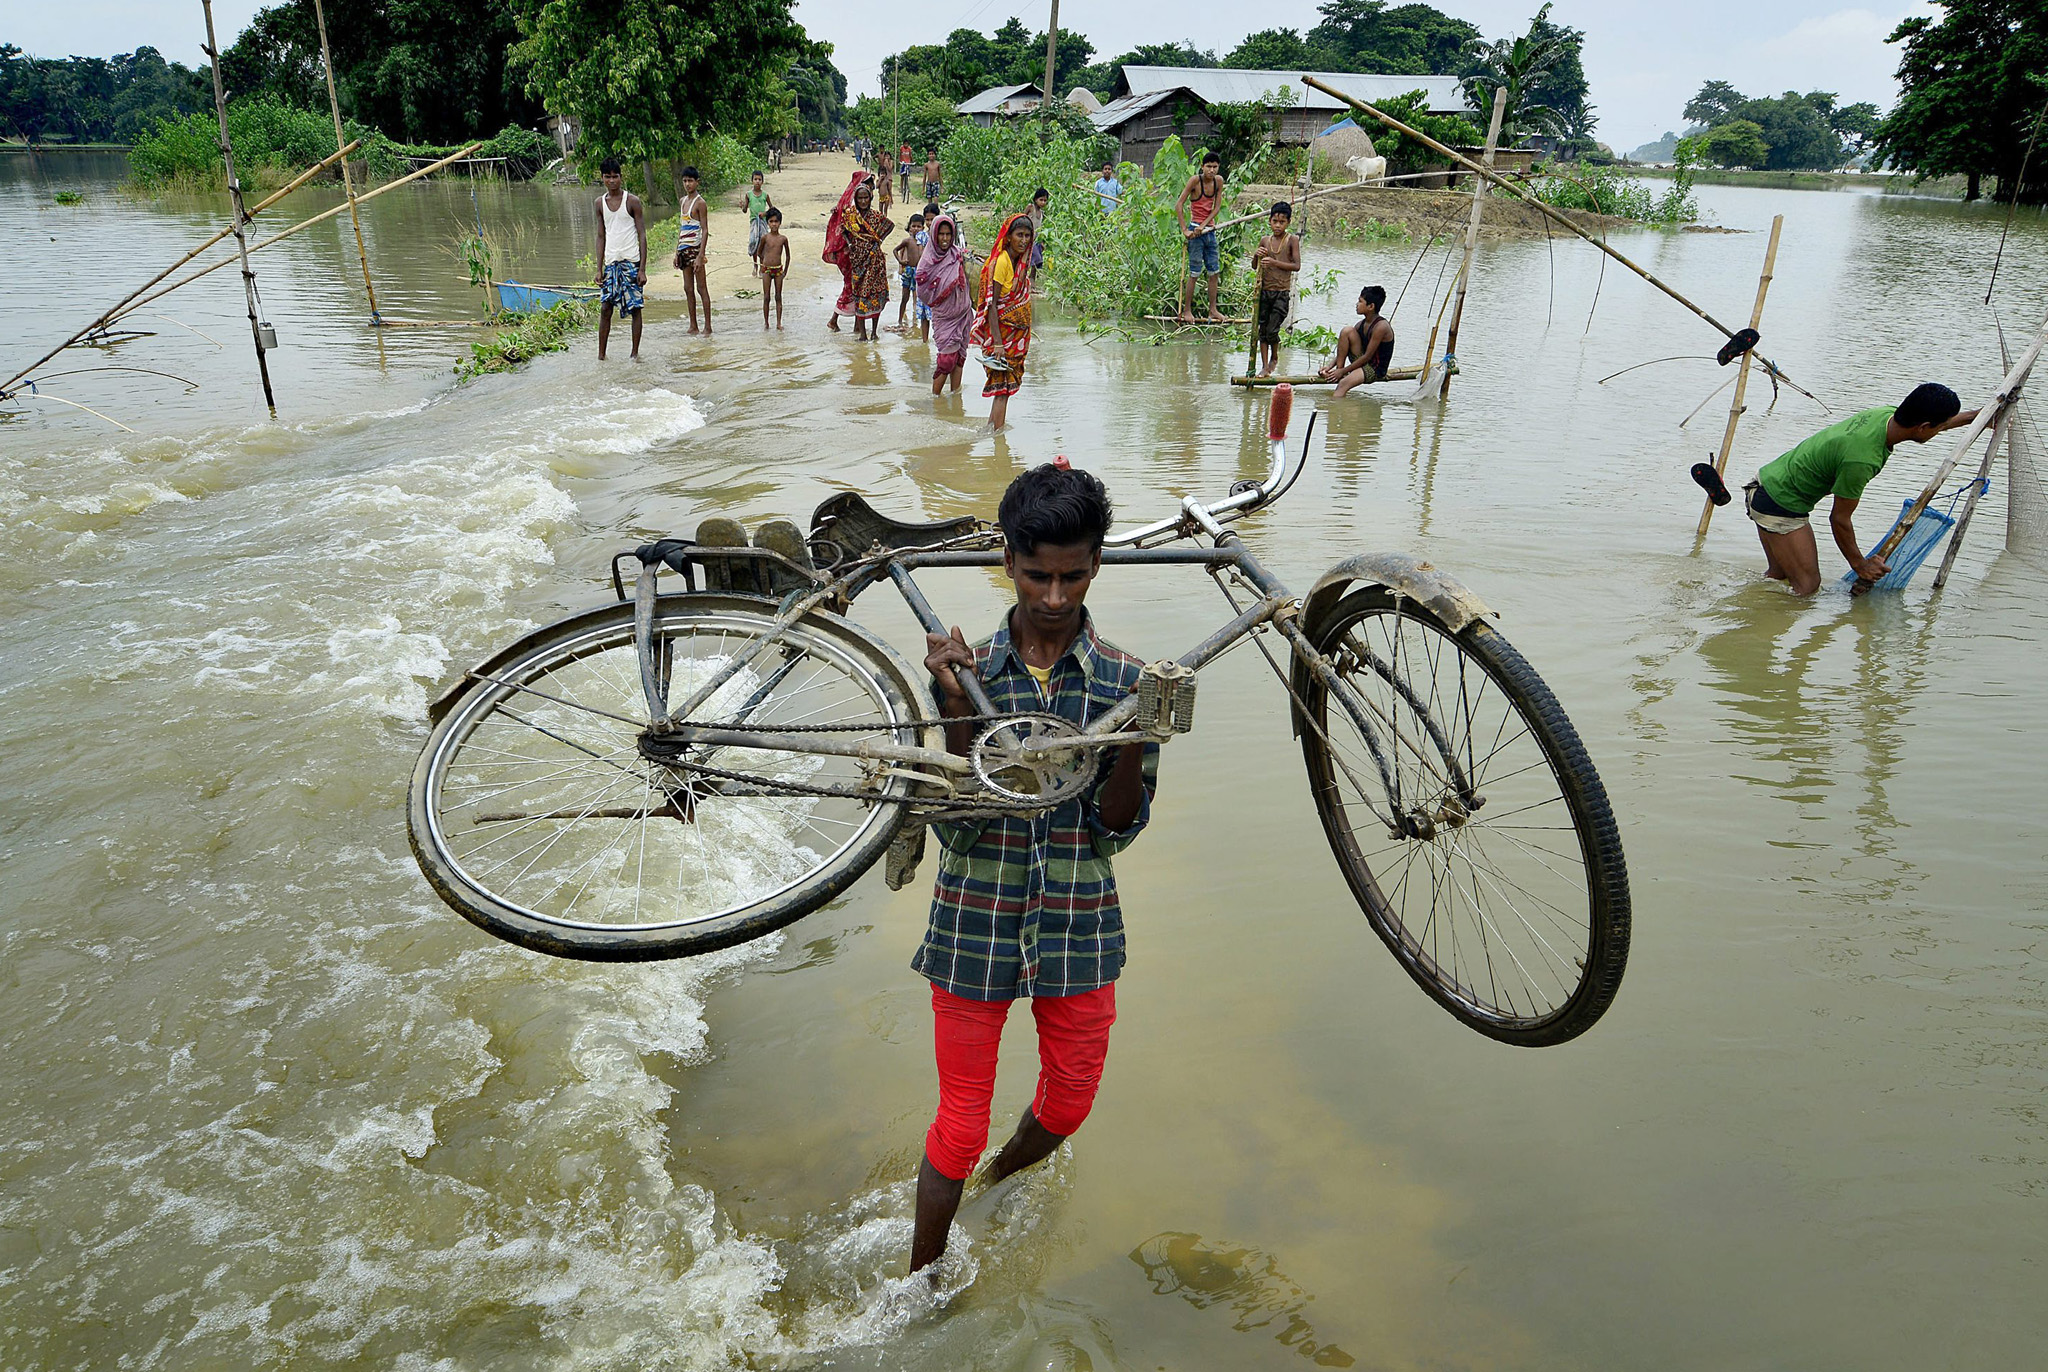 A boy carries his bicycle through floodwater in the Morigaon district of Assam state, India. Dozens of people were killed and more than a million affected as floods driven by torrential monsoon rains ravaged India's northern and eastern states.